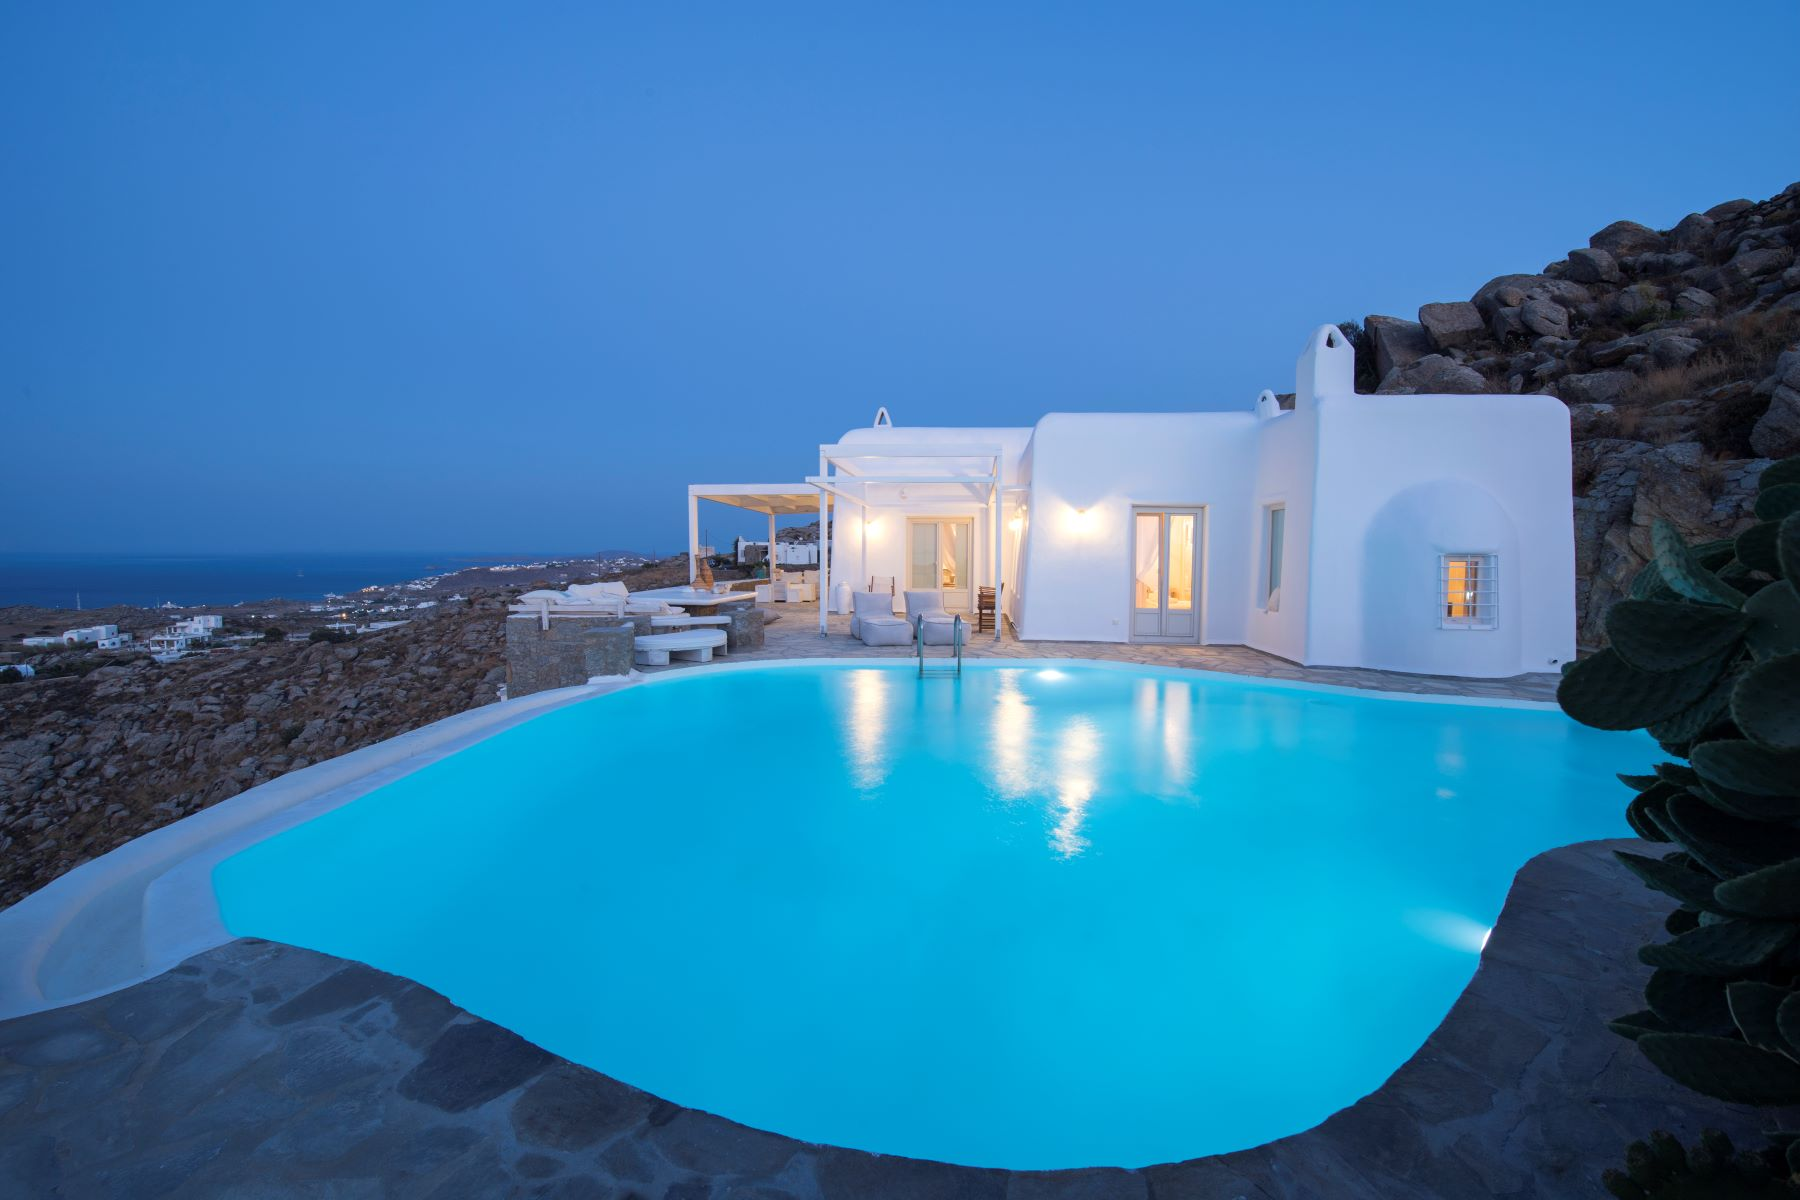 Single Family Homes for Sale at Mykonos, Southern Aegean Greece